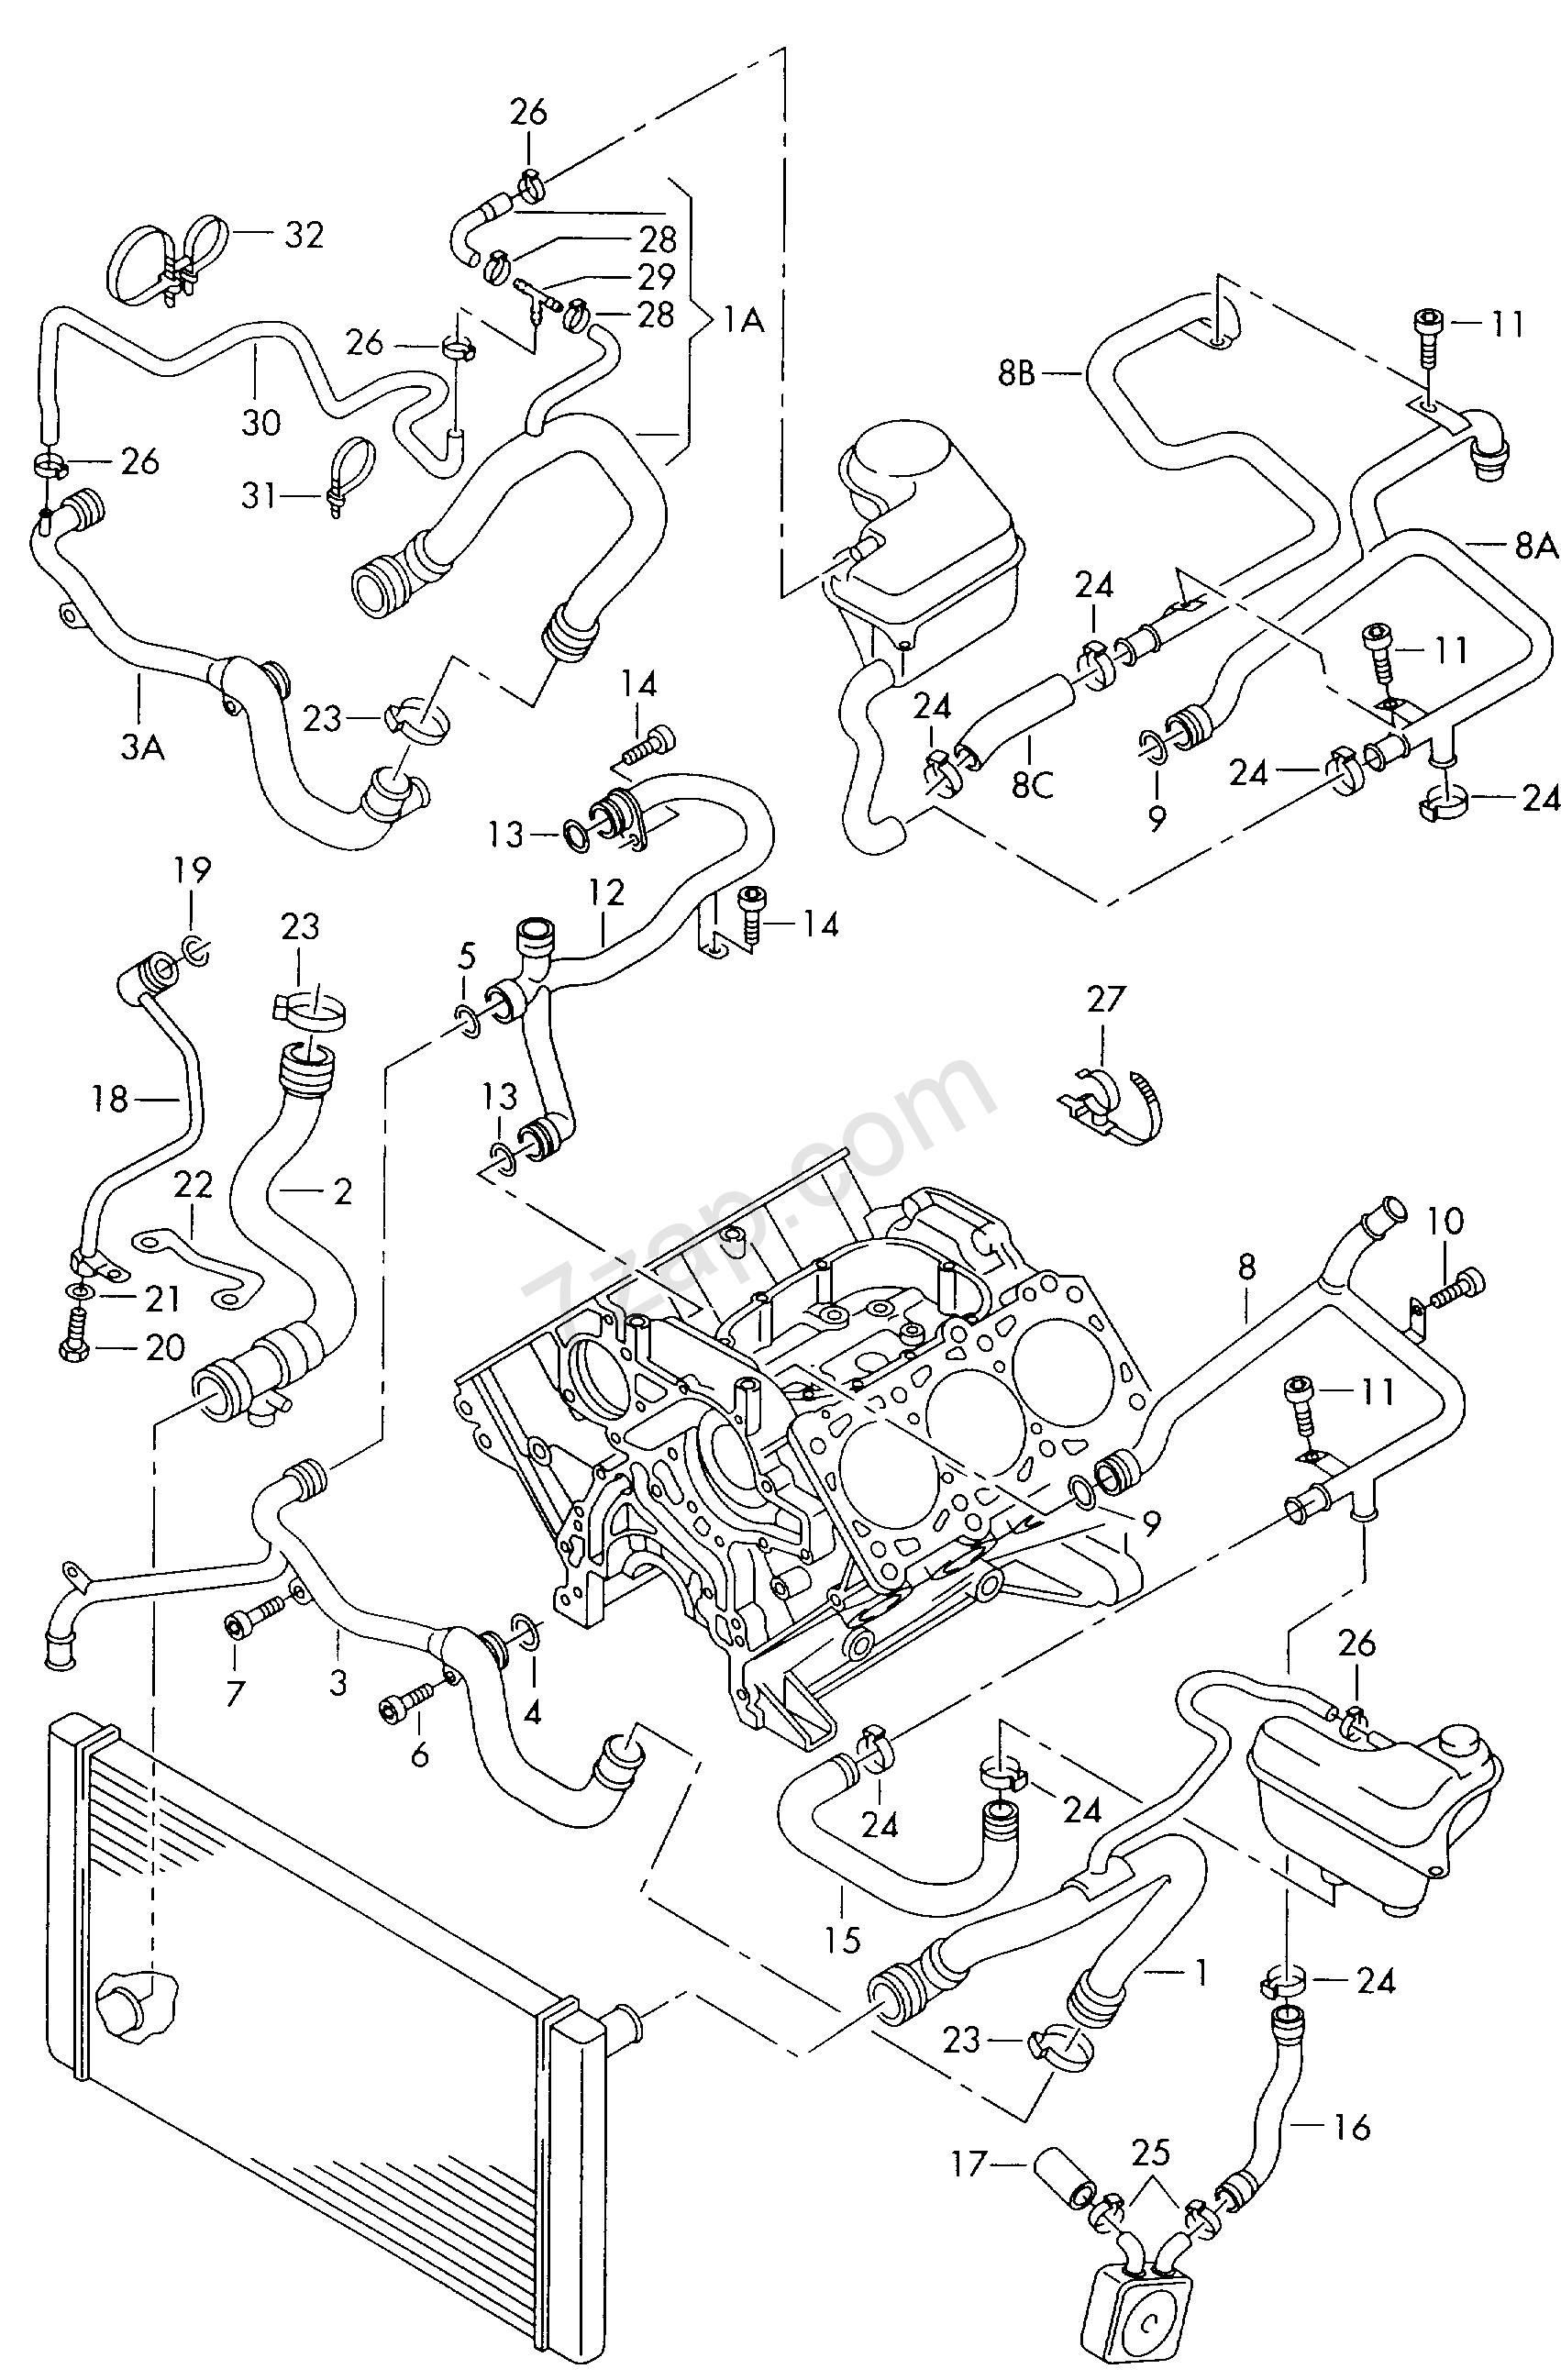 coolant cooling system - Audi A6/S6/Avant quattro(A6Q) [EUROPA 2000 year]